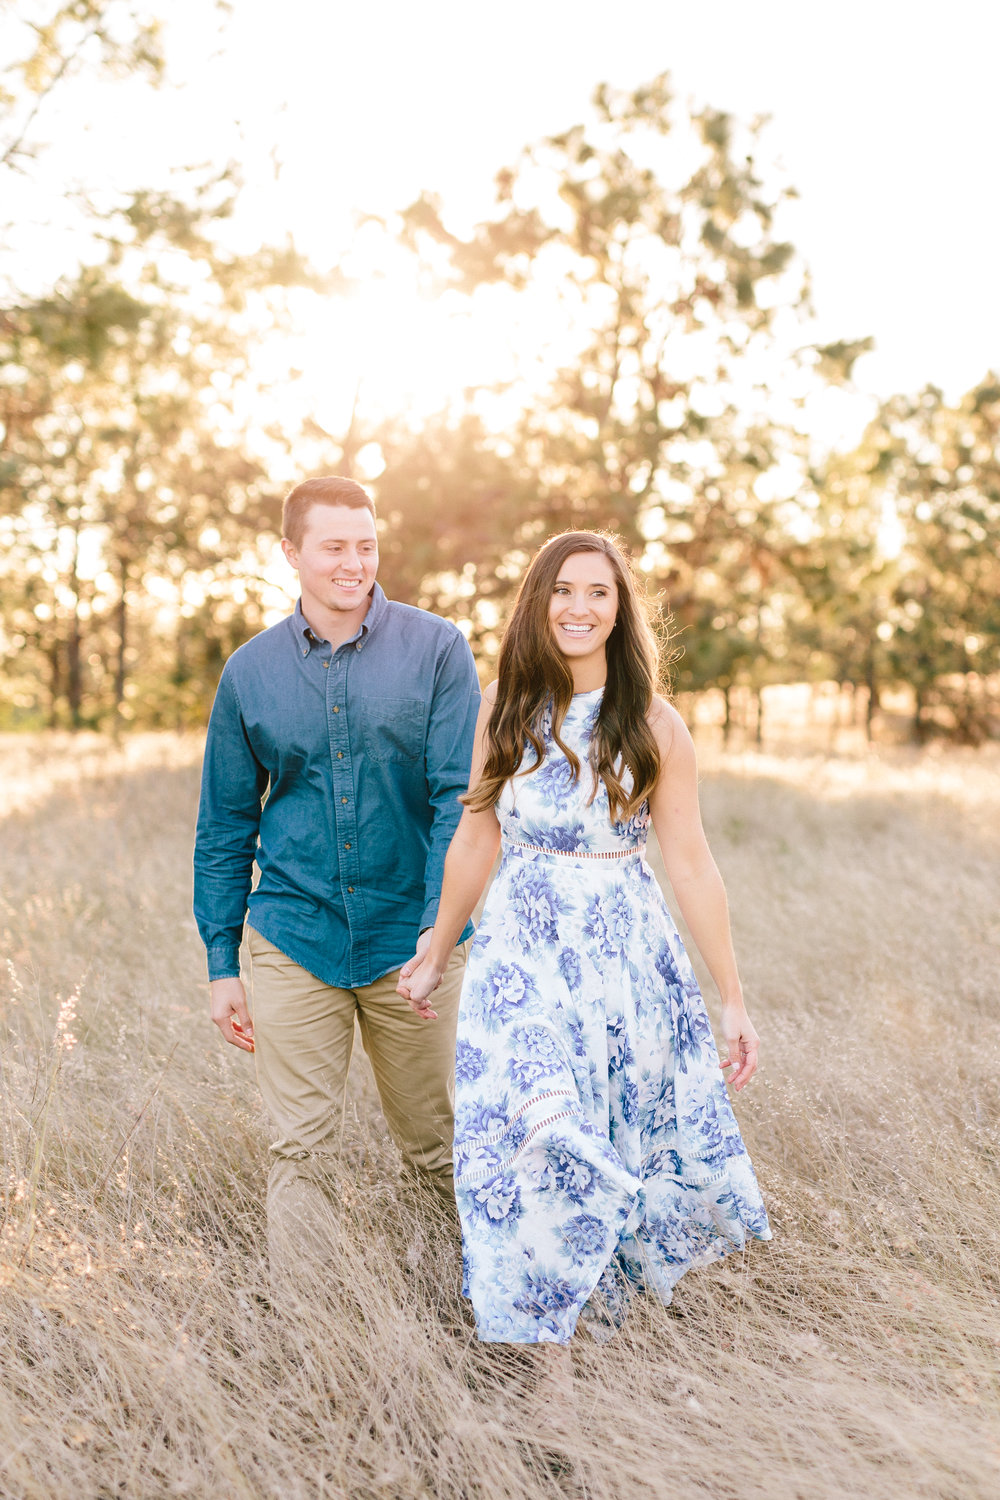 Kyra + Tommy Engagement -17.jpg